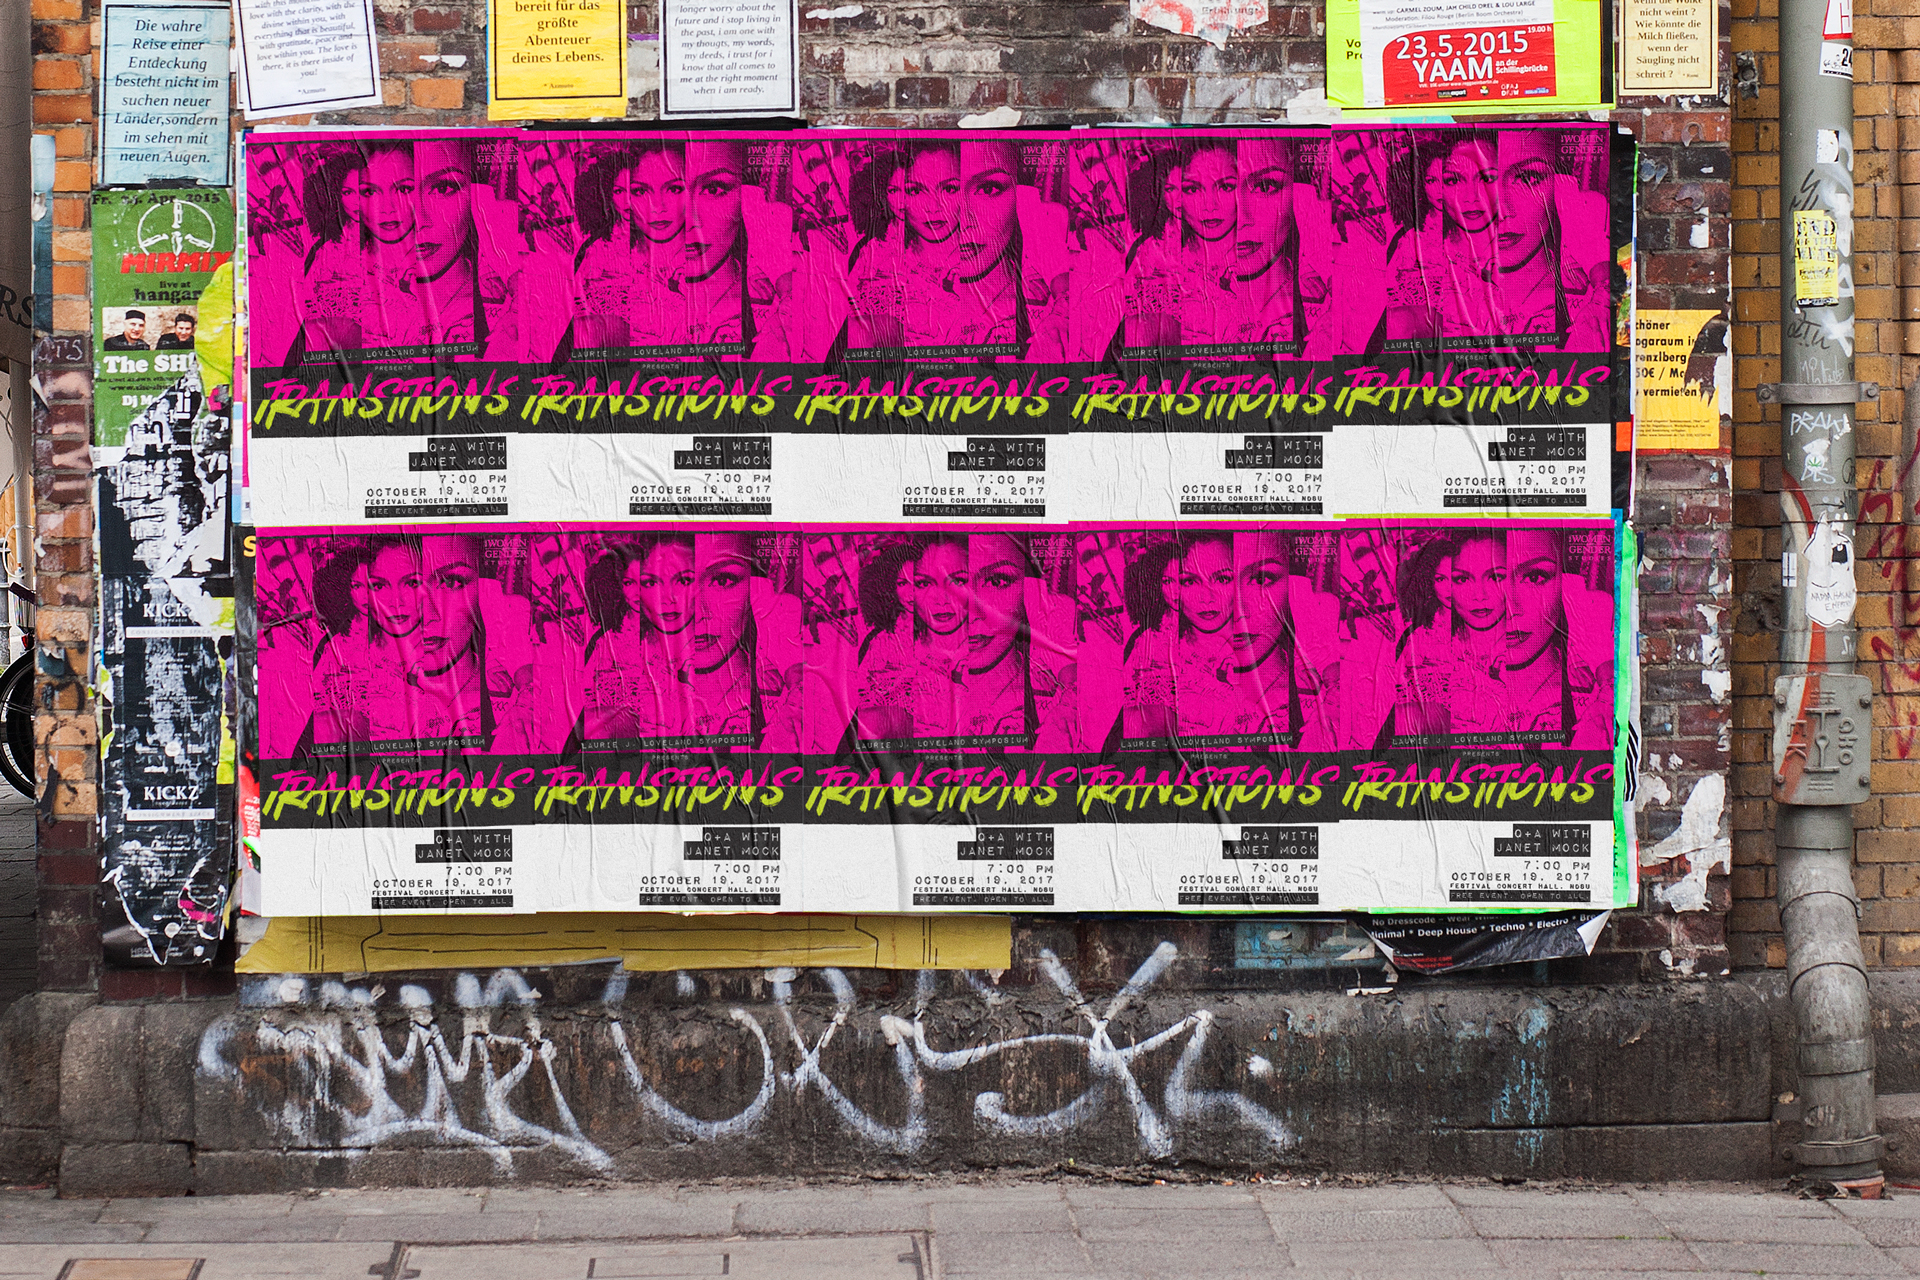 Black, pink, and white transformation poster plastered repeatedly on a city wall above graffiti